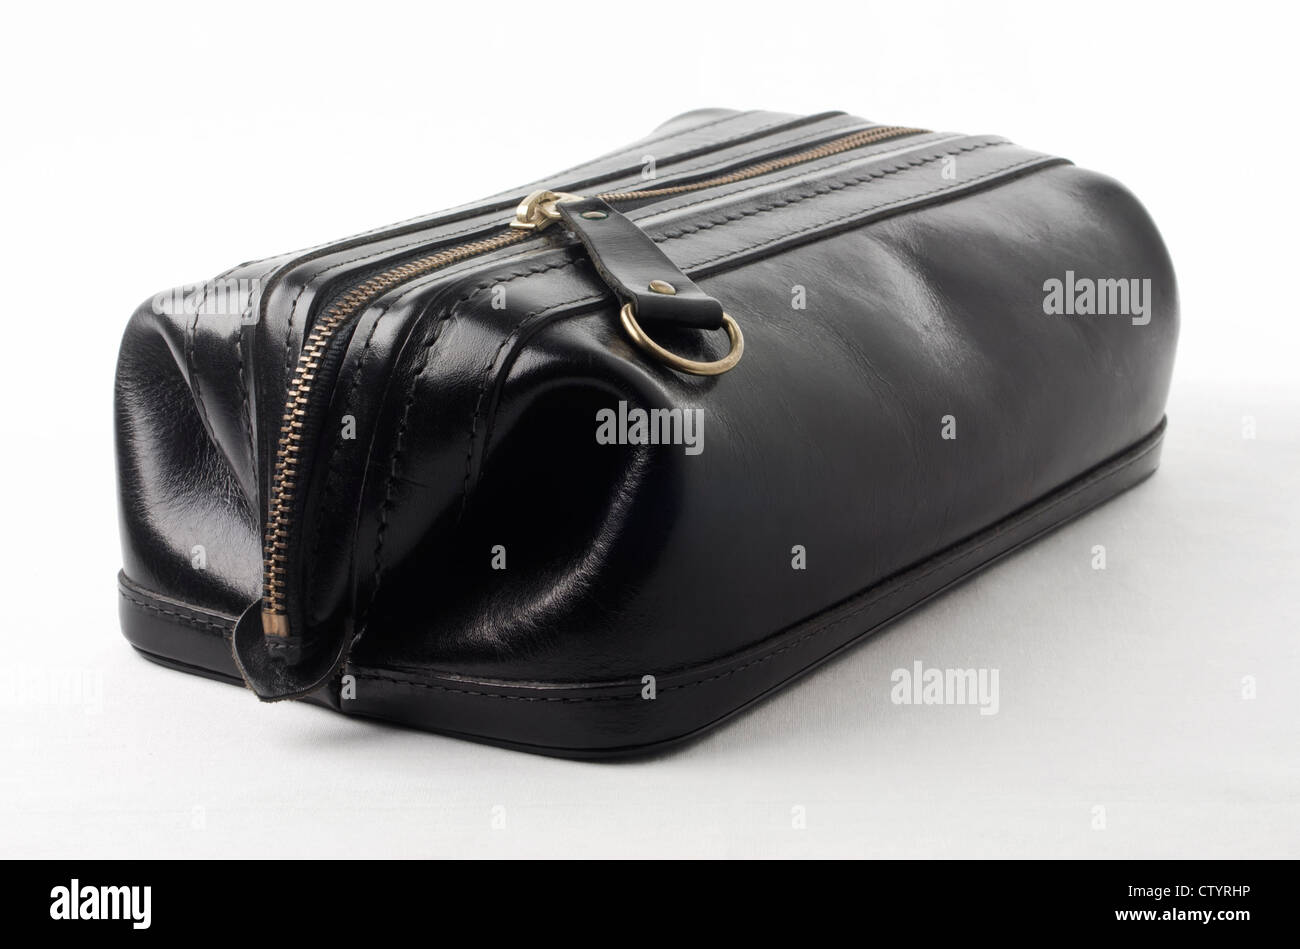 Man's black leather cosmetic toiletry accessory bag or pouch isolated on white background with copy space. - Stock Image